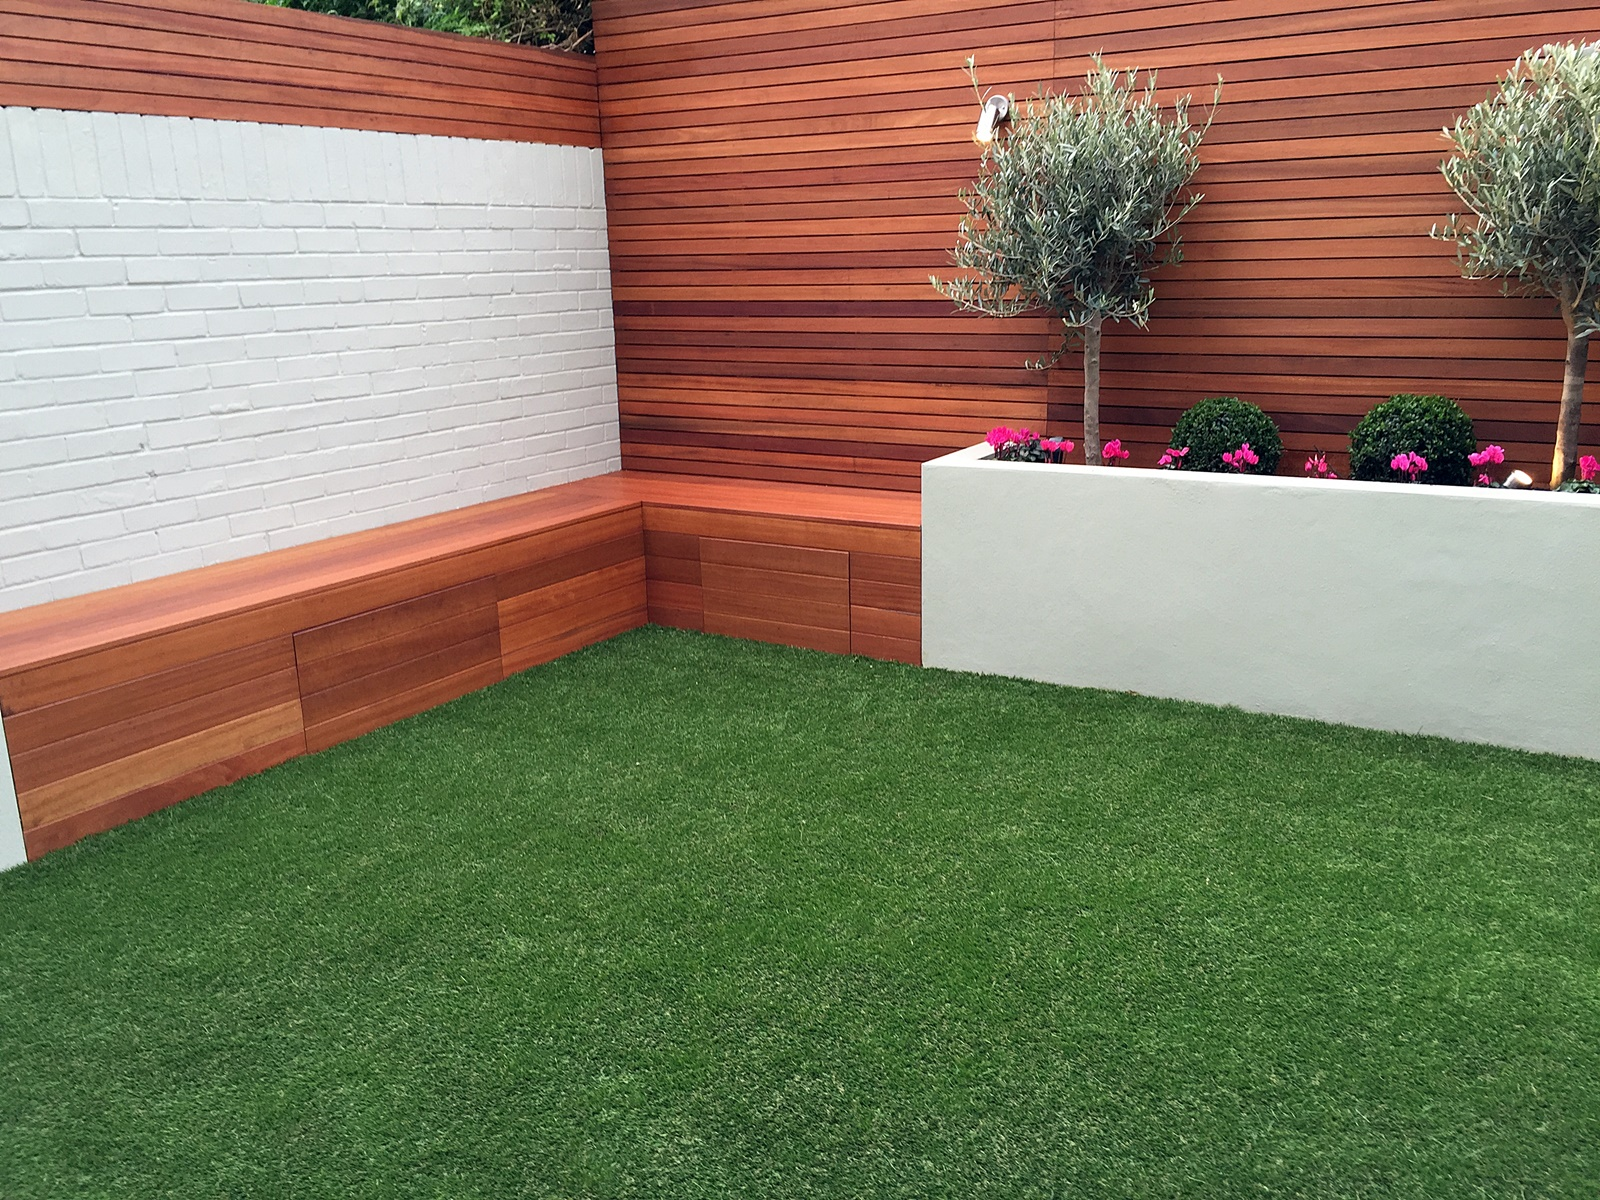 Simple modern court yard garden designer Battersea Fulham